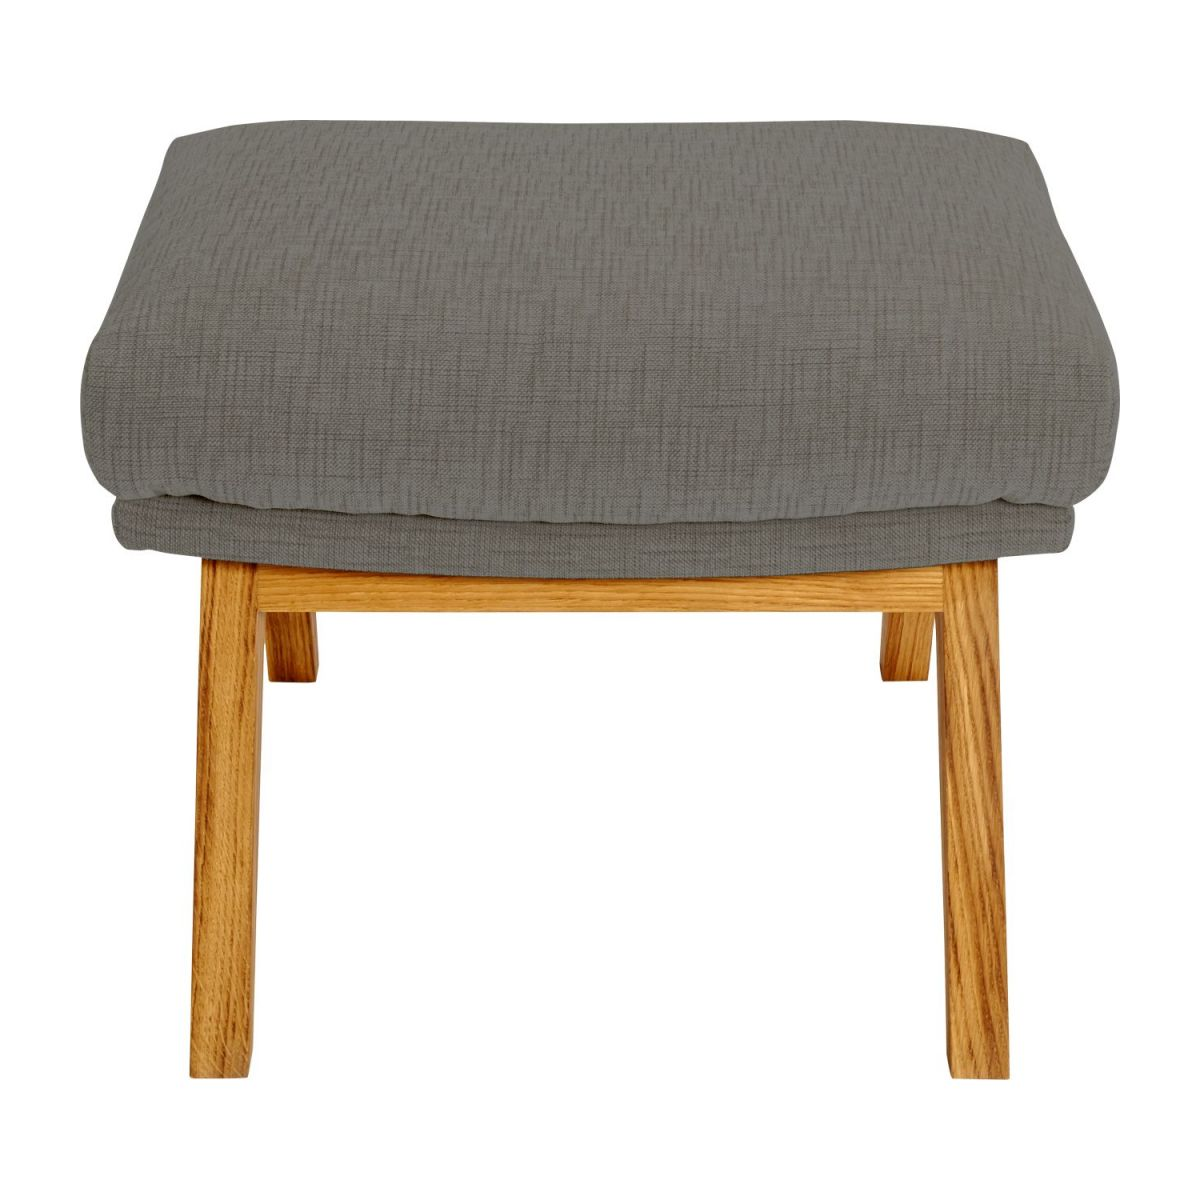 Footstool in Ancio fabric, river rock with oak legs n°2